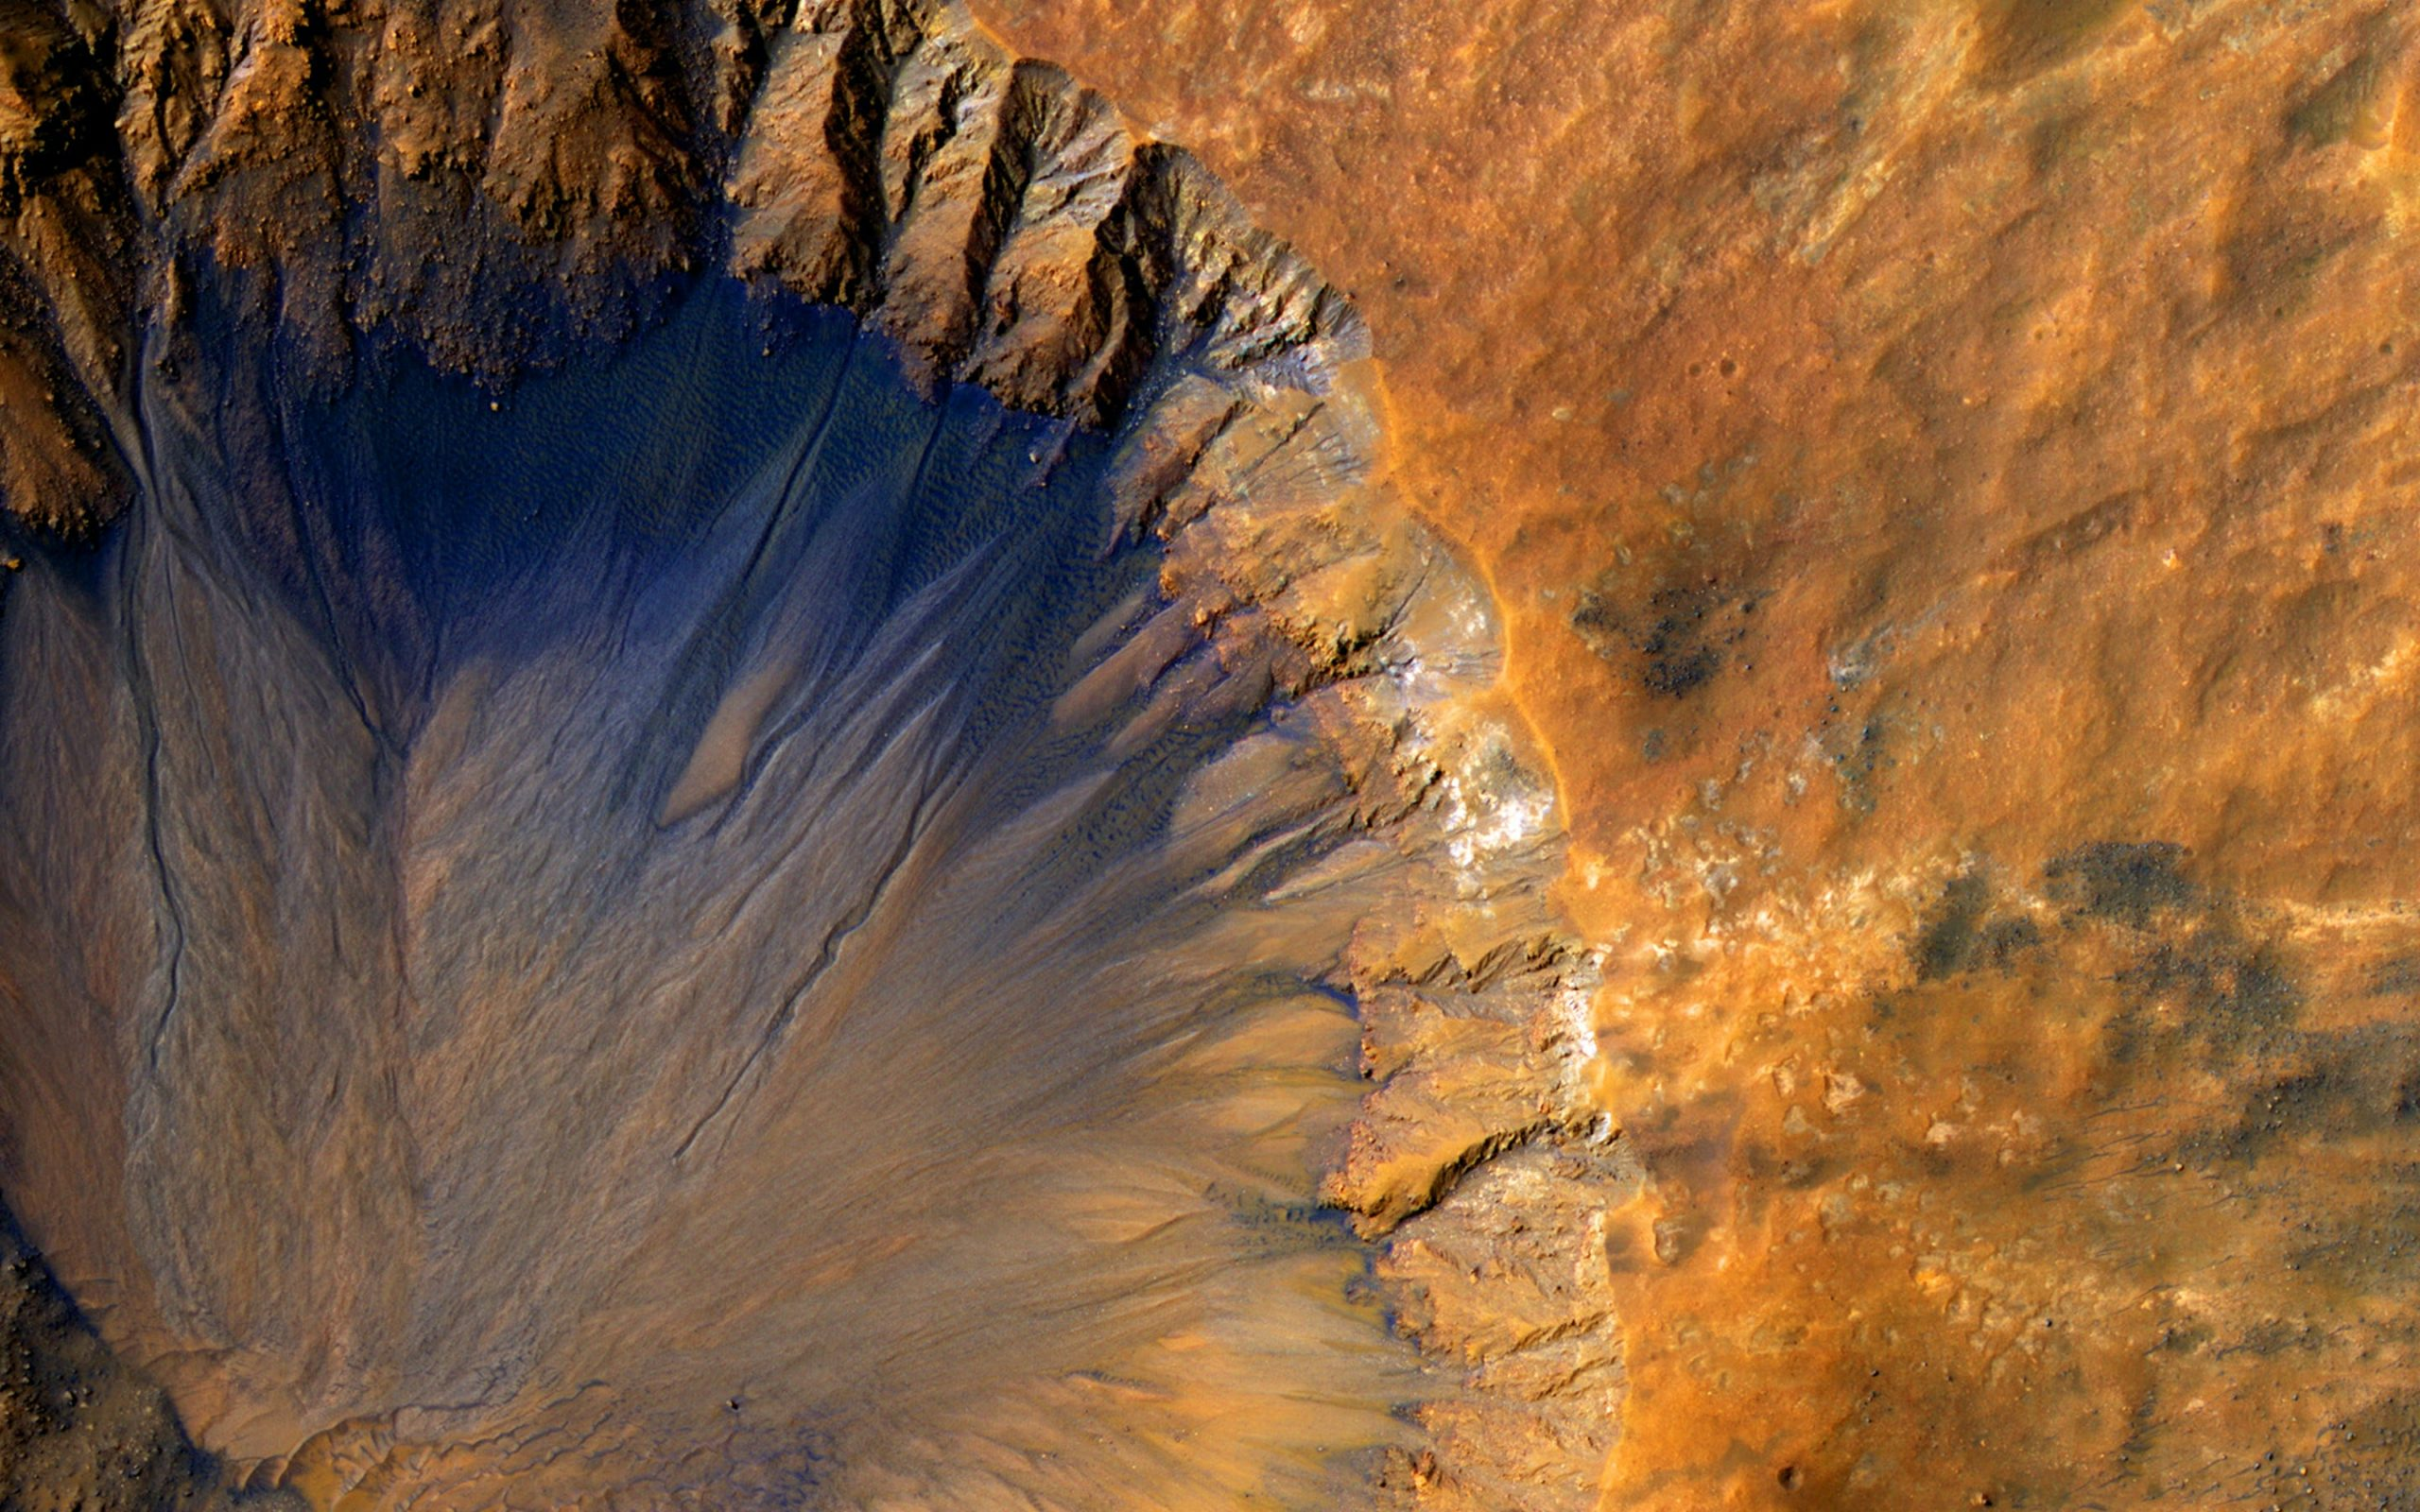 A satellite photo of the Sirenum Fossae, a large trough on the surface of Mars.